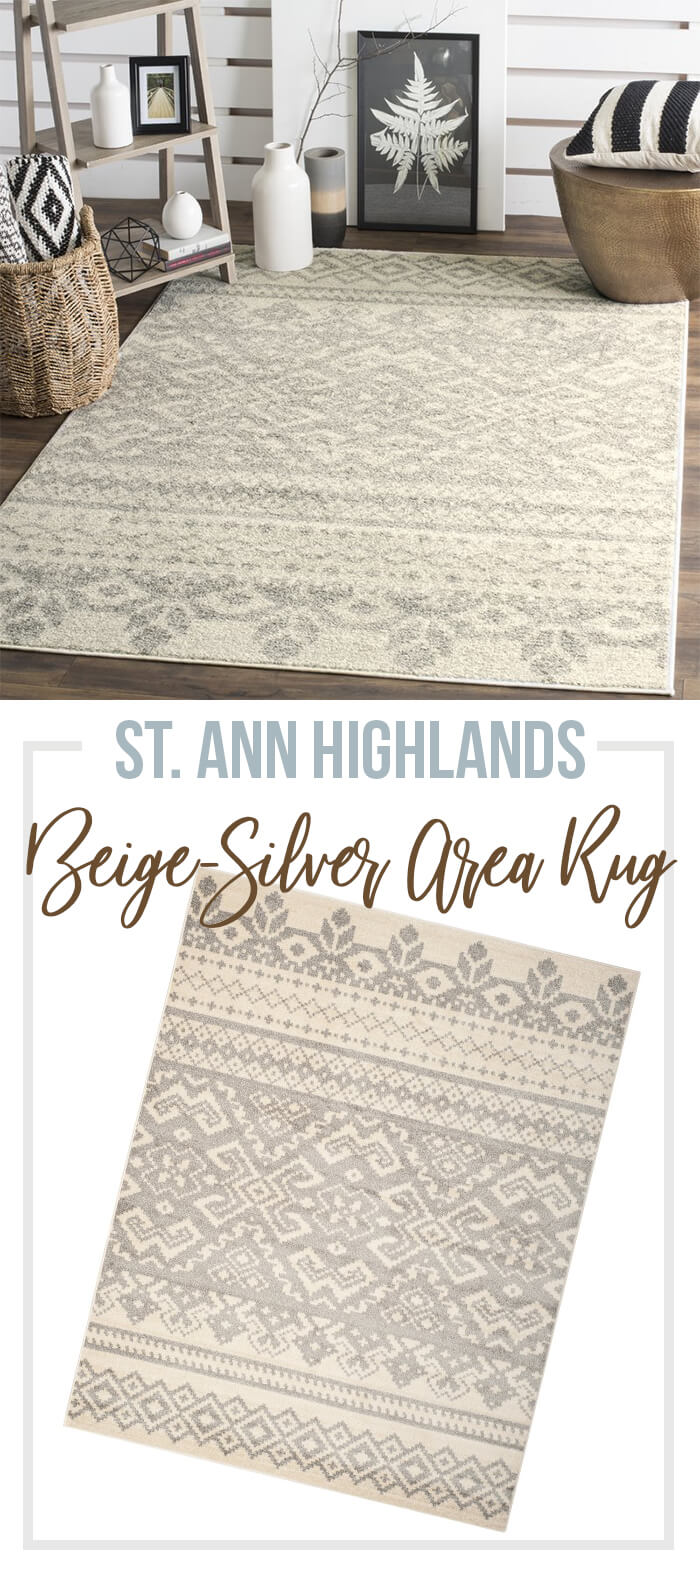 Masterfully Woven Beige & Silver Area Rug